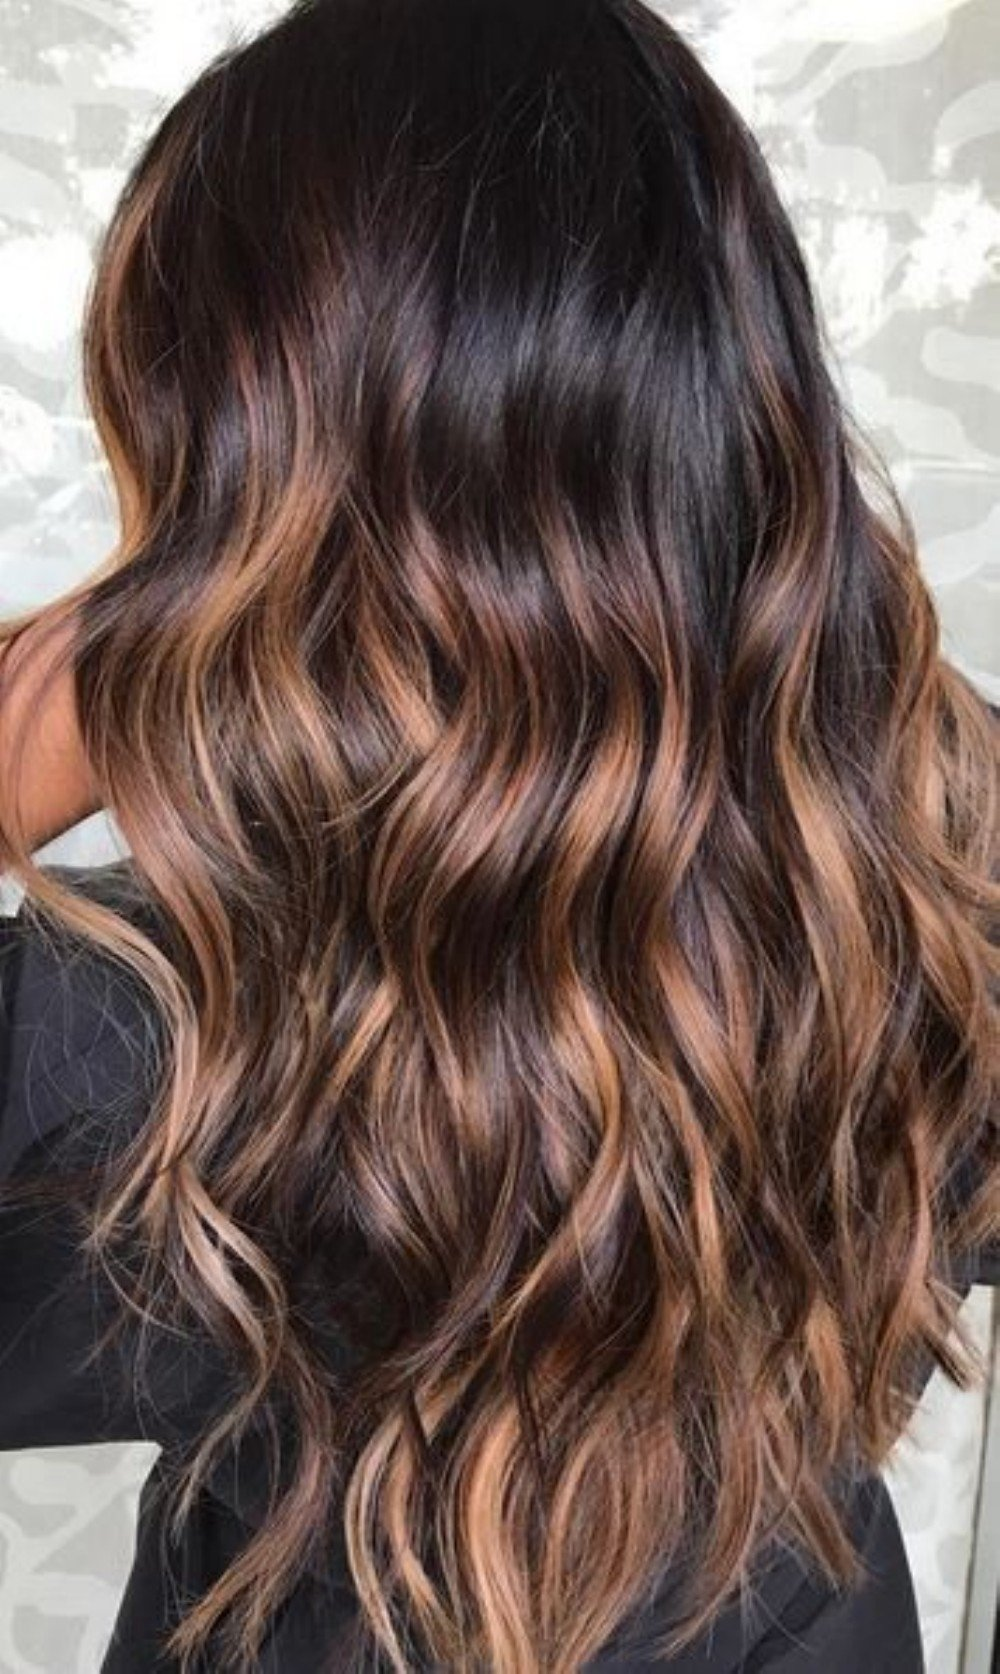 10 Ideal Hair Coloring Ideas For Long Hair 25 top brunette hair color ideas to try 2017 fashionetter 1 2020